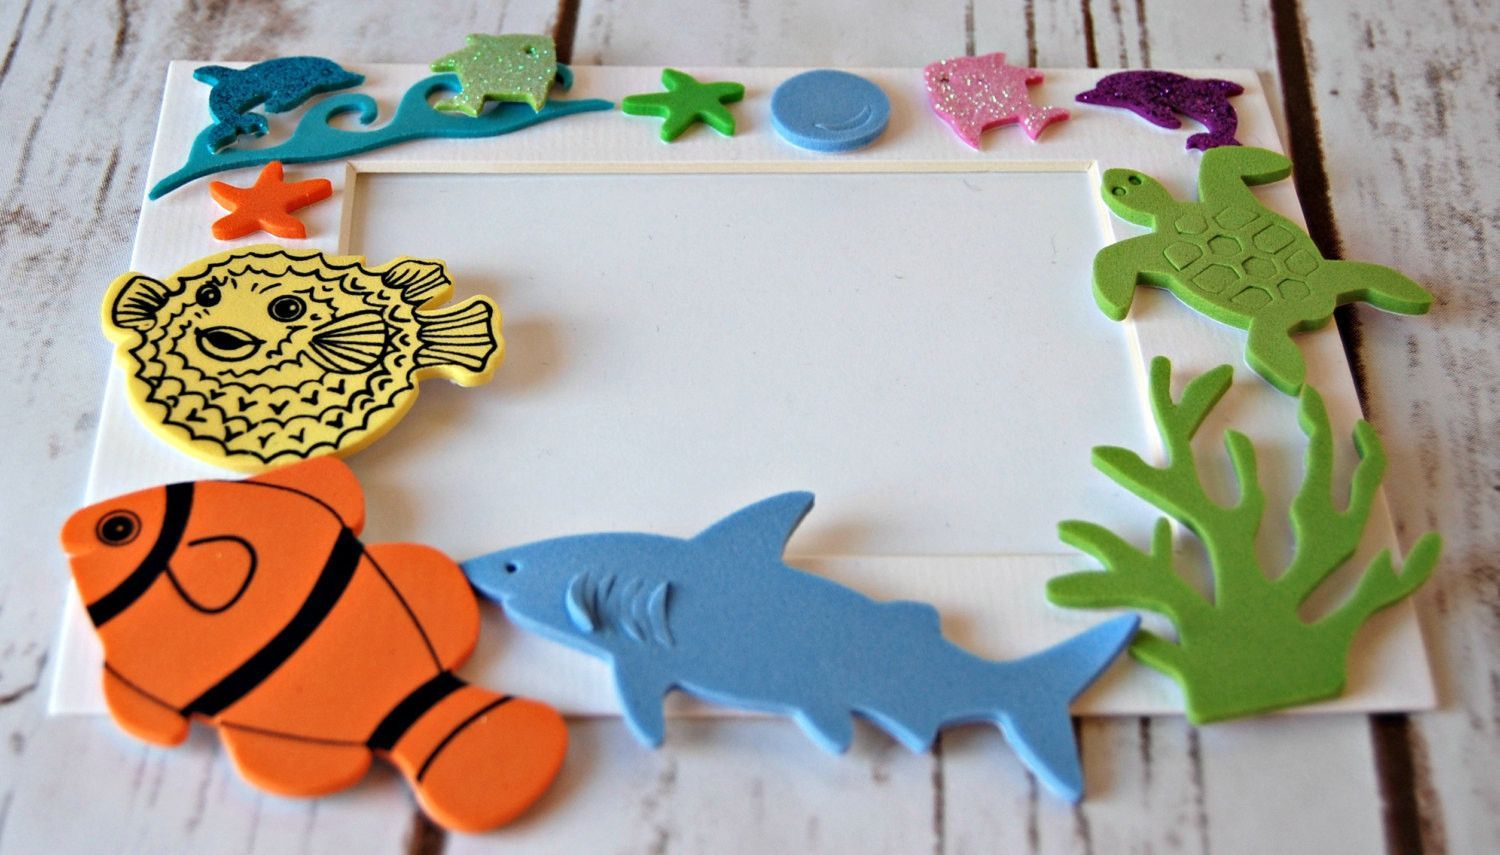 Under The Sea Themed Photo Frame Craft Kit Bible Story Crafts